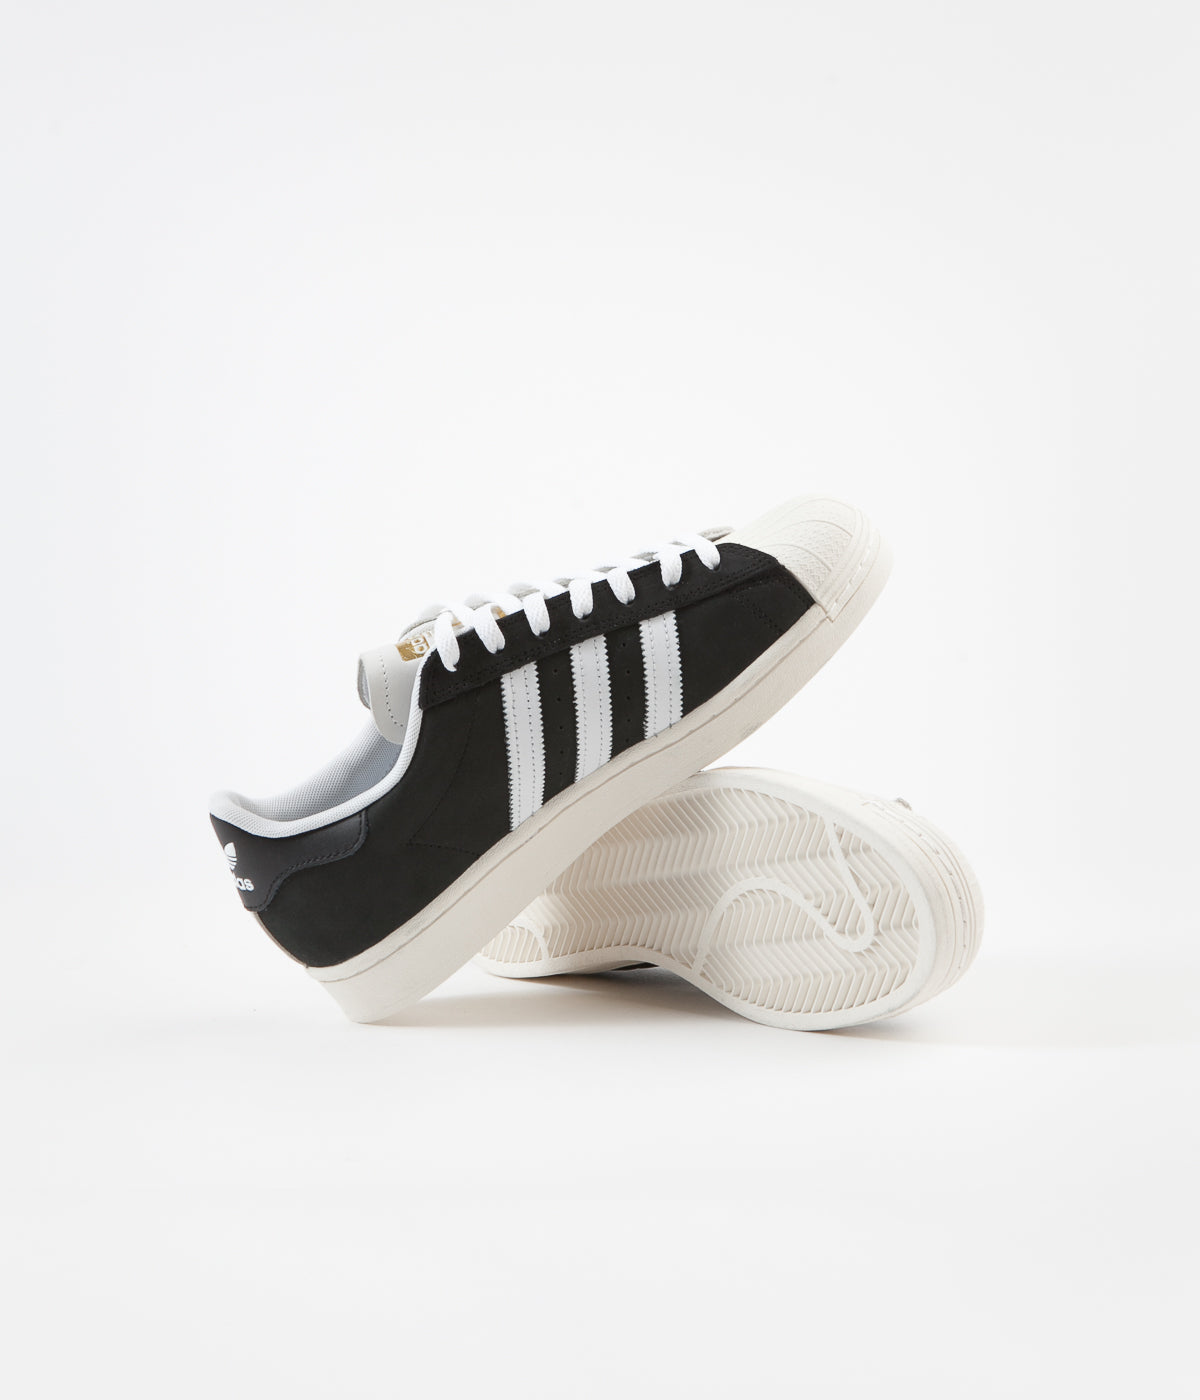 Adidas Superstar Shoes - 2 Tone / White